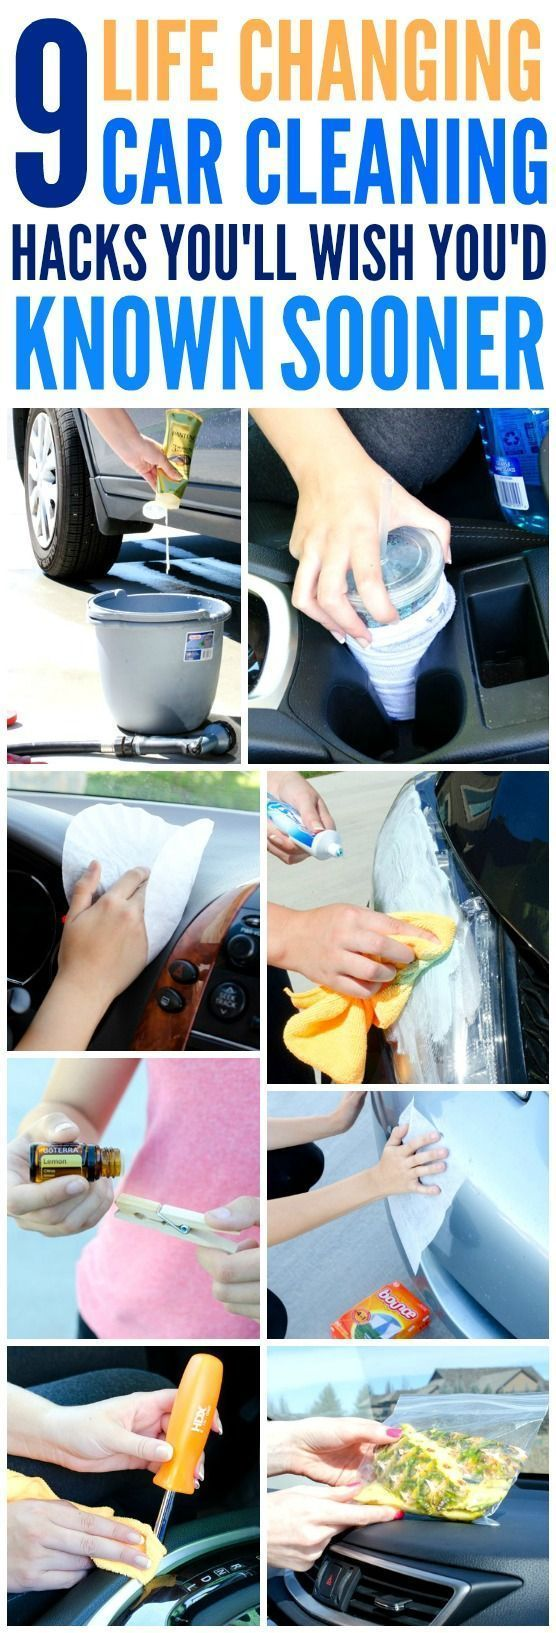 tokyo hot  e750 9 Brilliant Car Cleaning Hacks That Are Beyond Easy